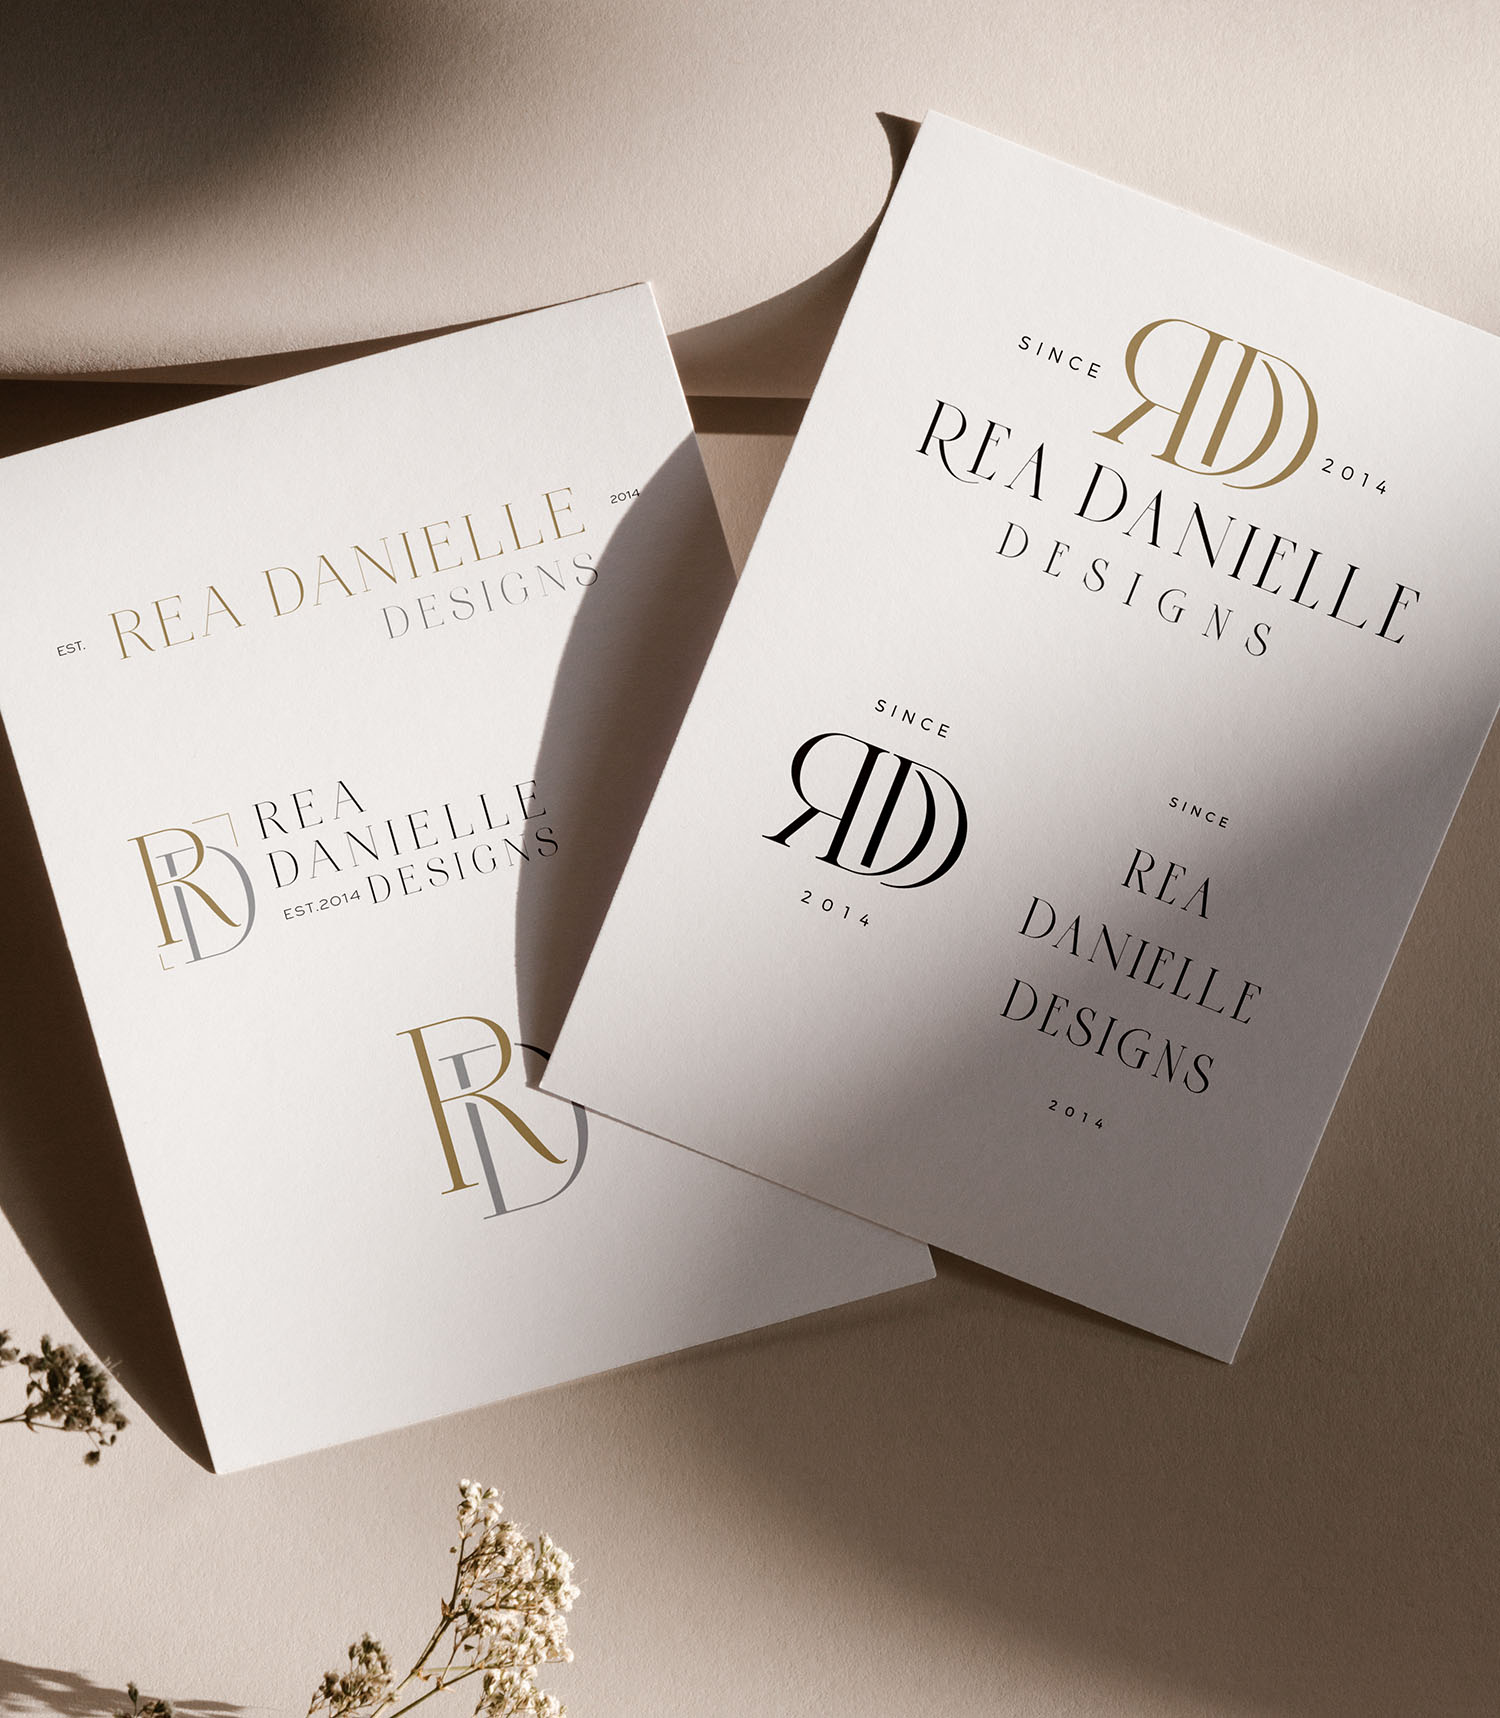 logo design concepts for Rea Danielle Designs - luxury branding for a wedding planner, by Fancy Girl Design Studio